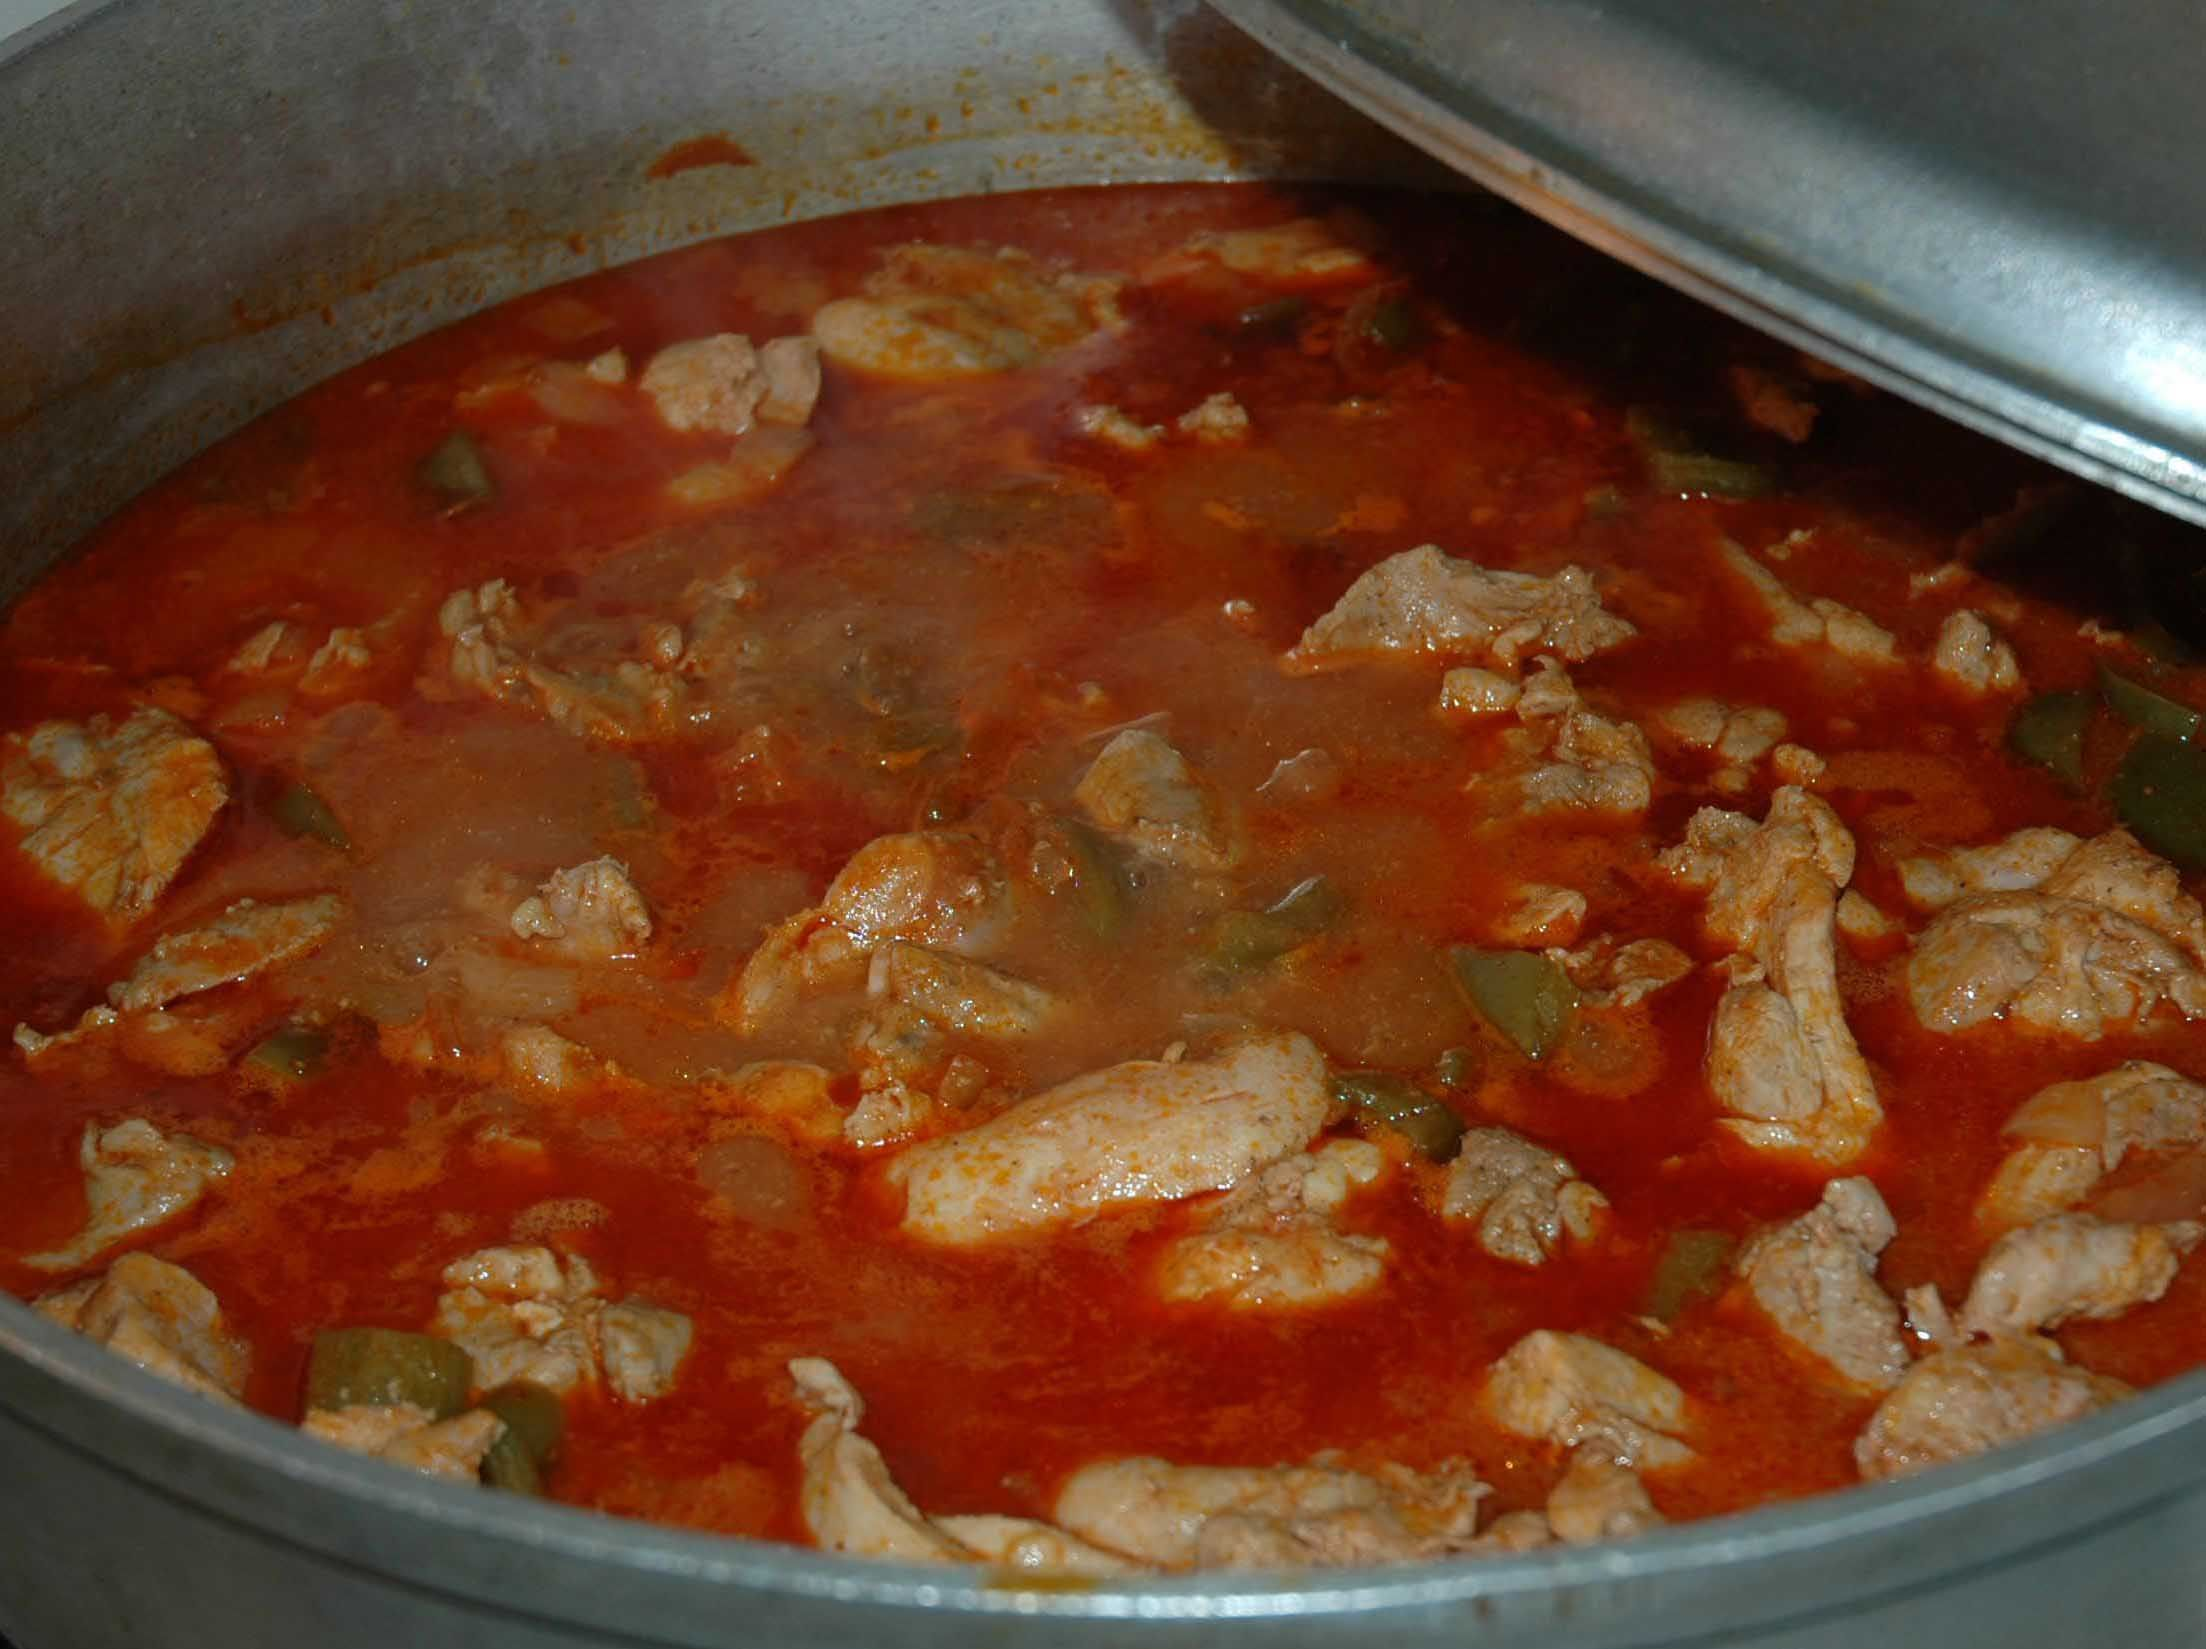 Chicken fricasse still warming up in the pot!  Mmmm!  Check out muchogusto.com for the recipe and more information about To Cook Is to Love.  #chickenfricasse #tocookistolove #cubanfood #cubanrecipes